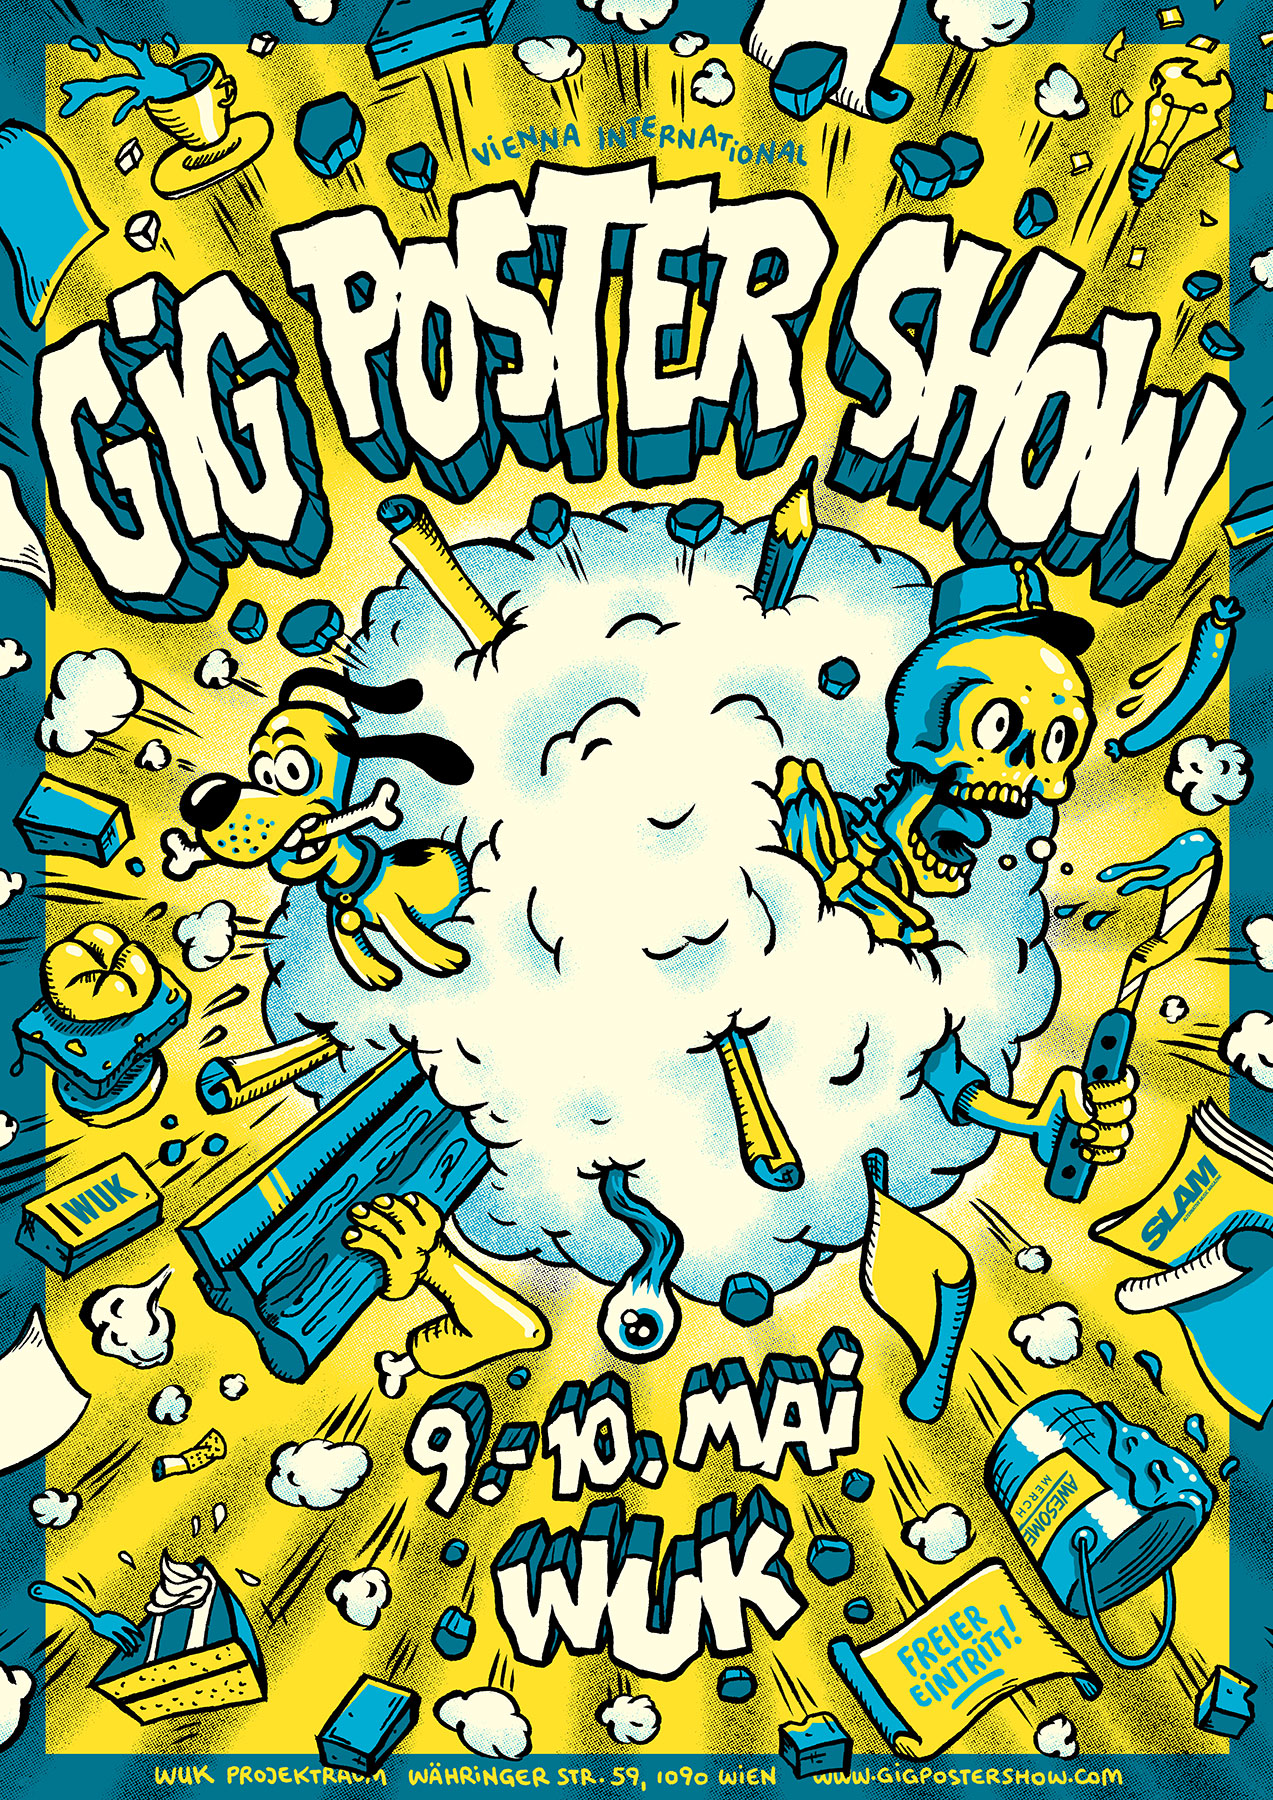 vienna-gig-poster-show-2020_WEB_1800px